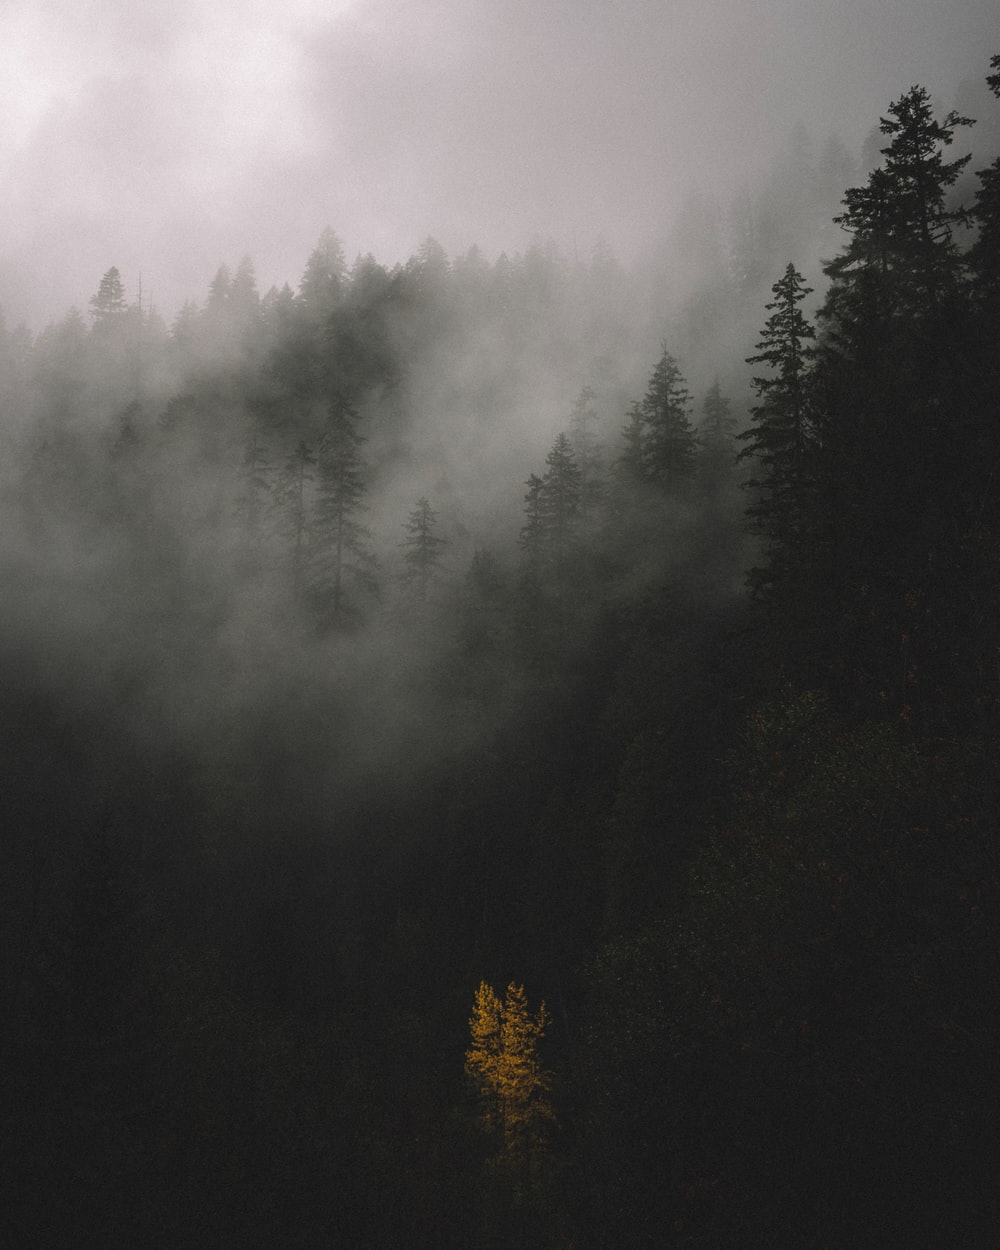 trees covered by fog